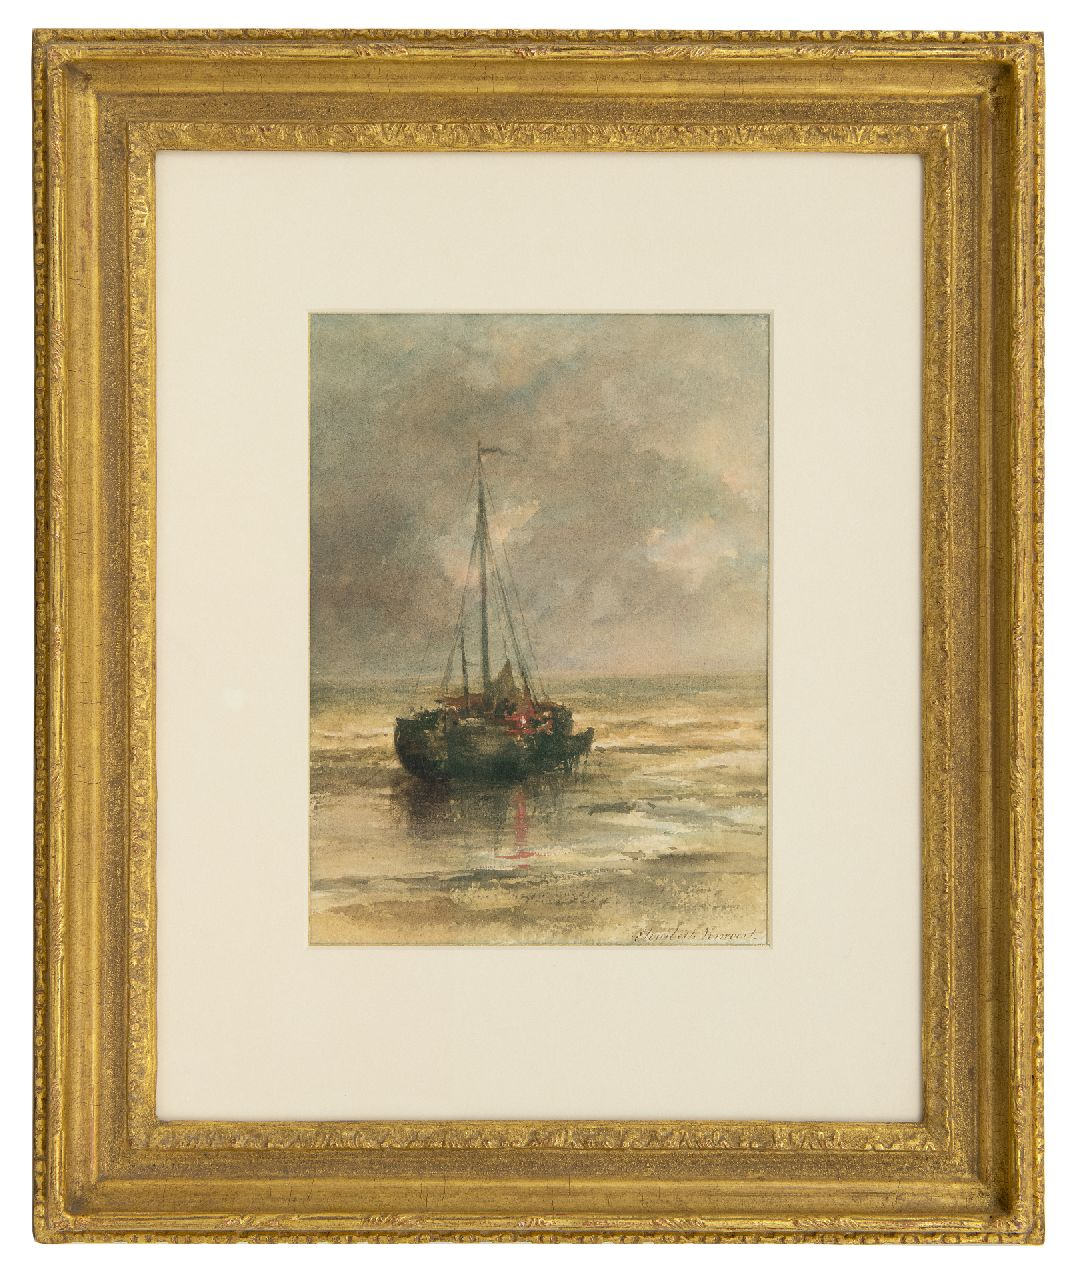 Verwoert M.E.  | Maria 'Elisabeth' Verwoert | Watercolours and drawings offered for sale | Moored fishing boat near the beach, watercolour on paper 29.8 x 22.2 cm, signed l.r.